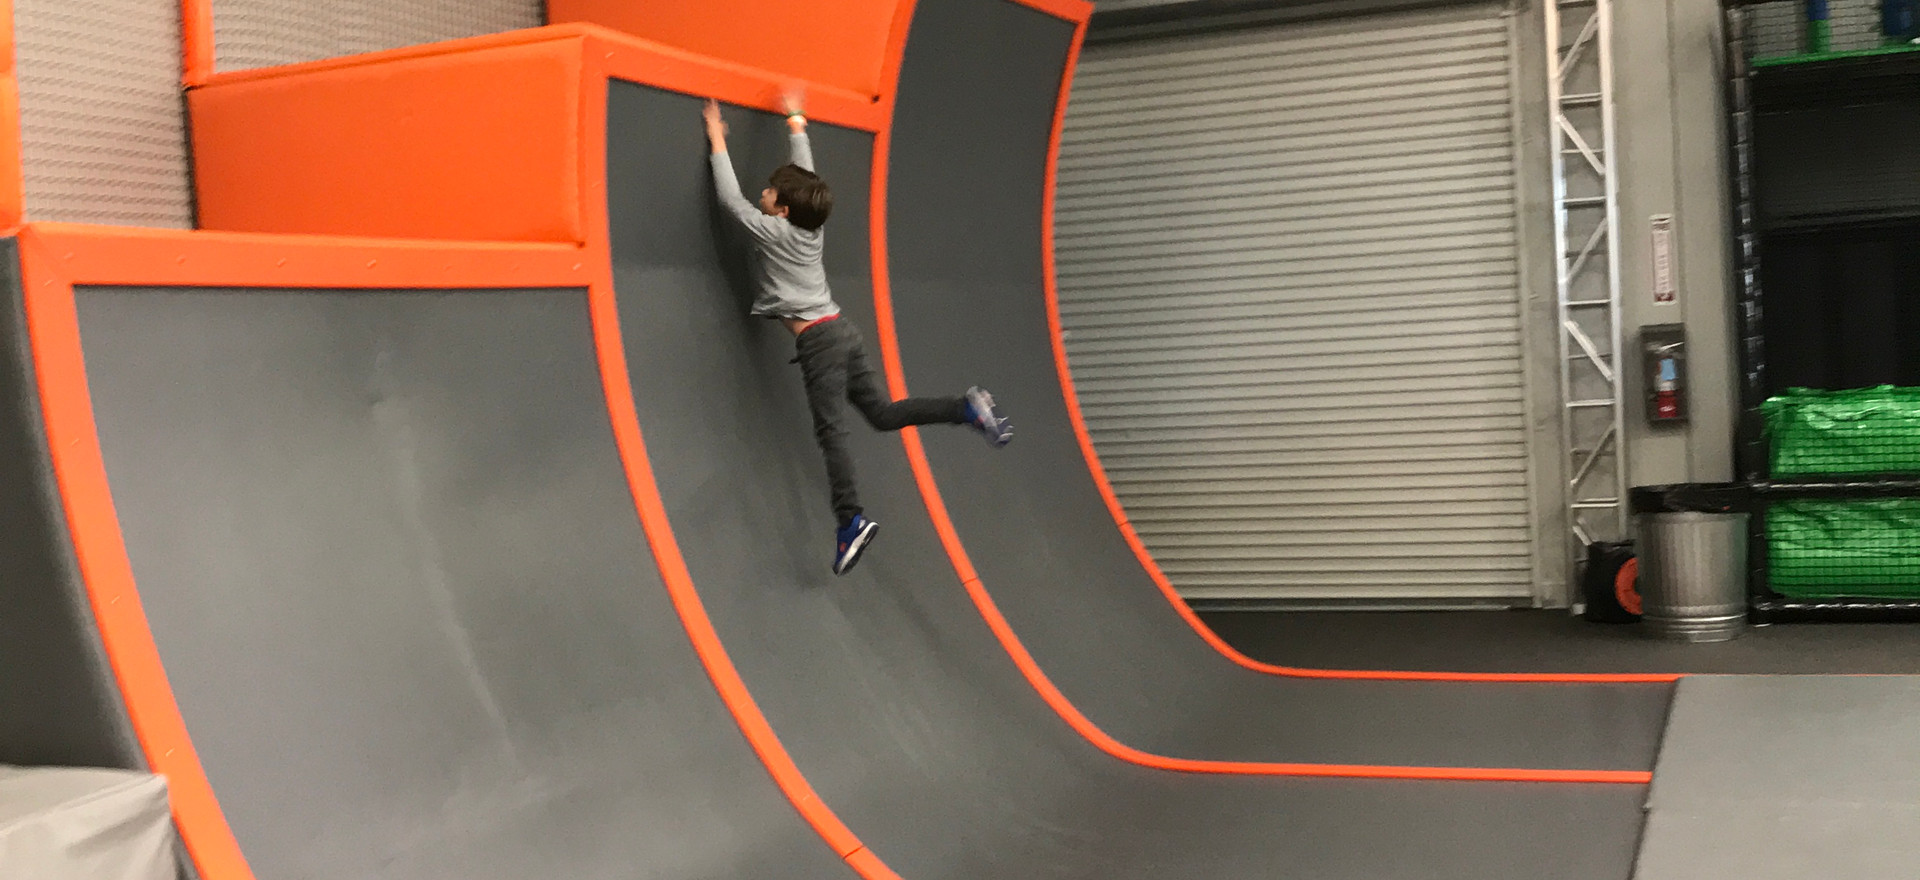 Warped Wall Indoors (Closed)